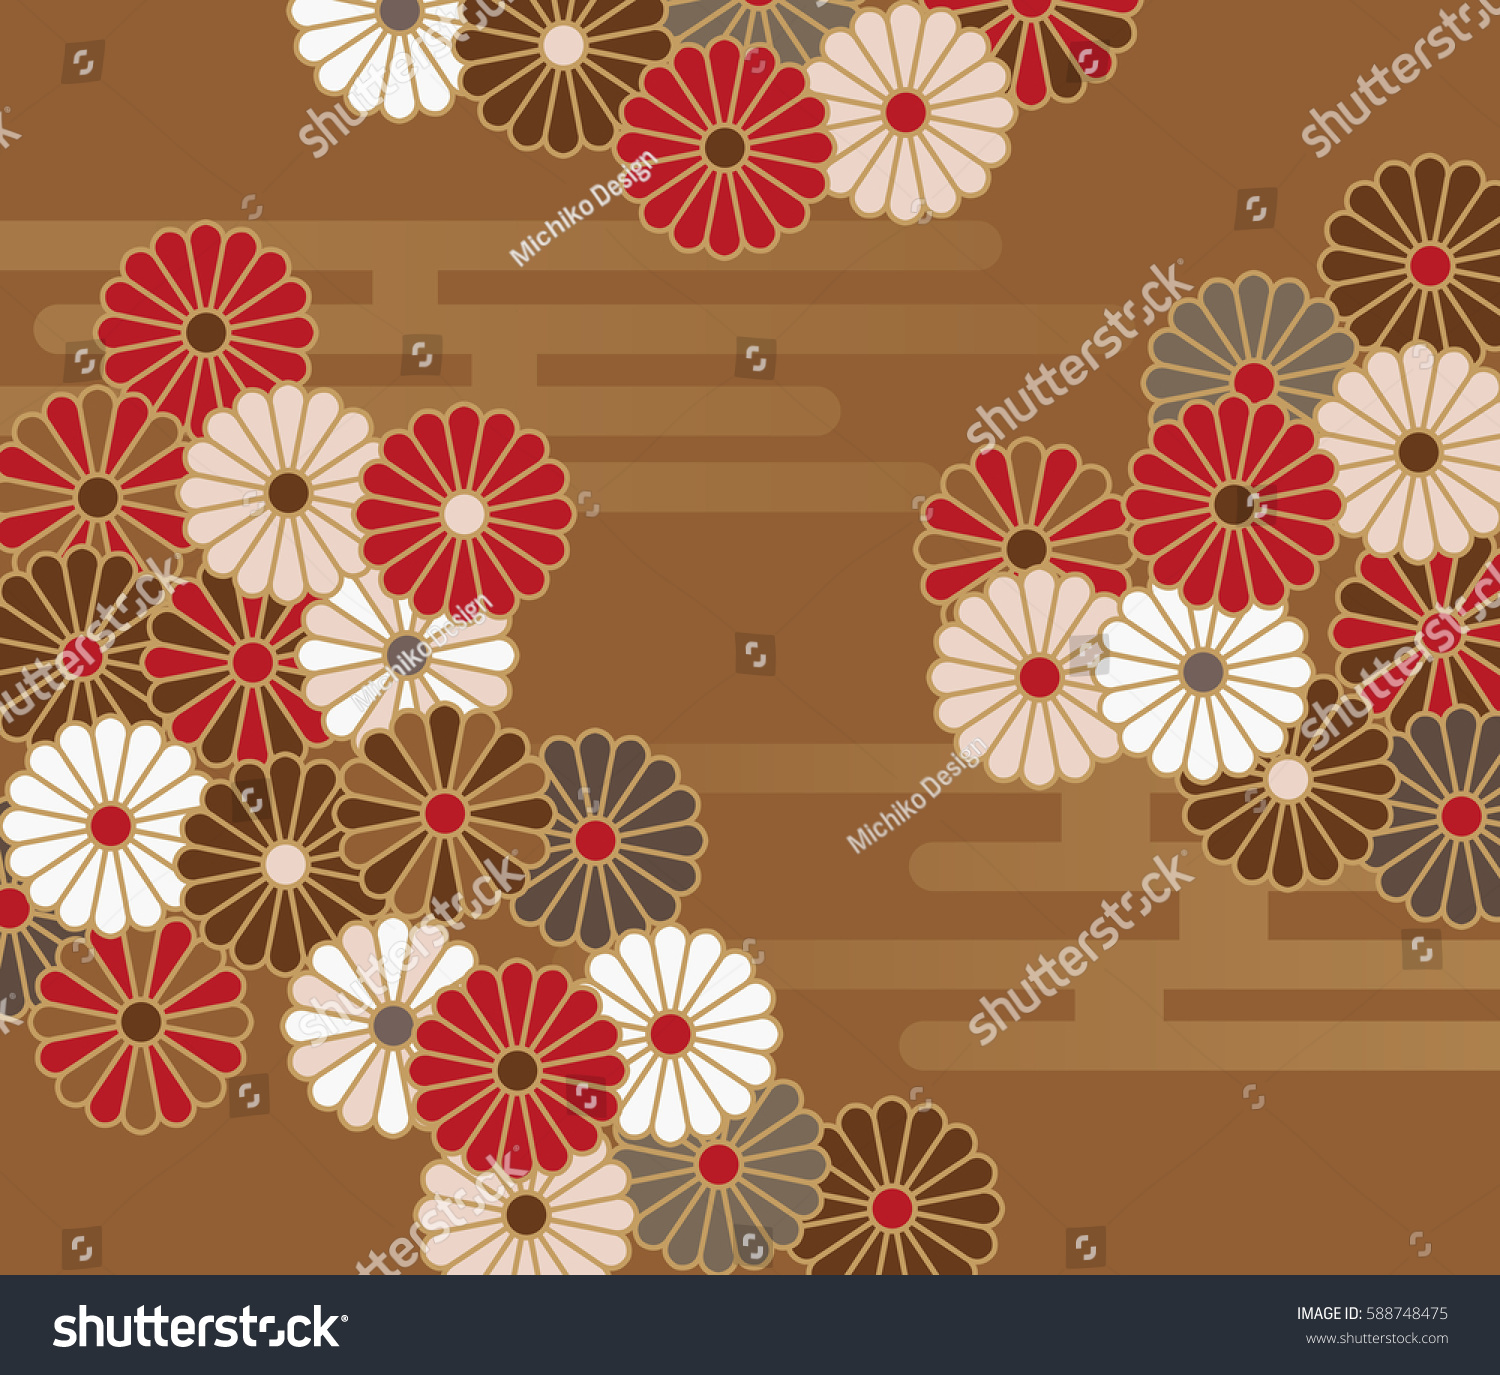 japanese style floral pattern chrysanthemums stock vector a japanese style floral pattern with chrysanthemums